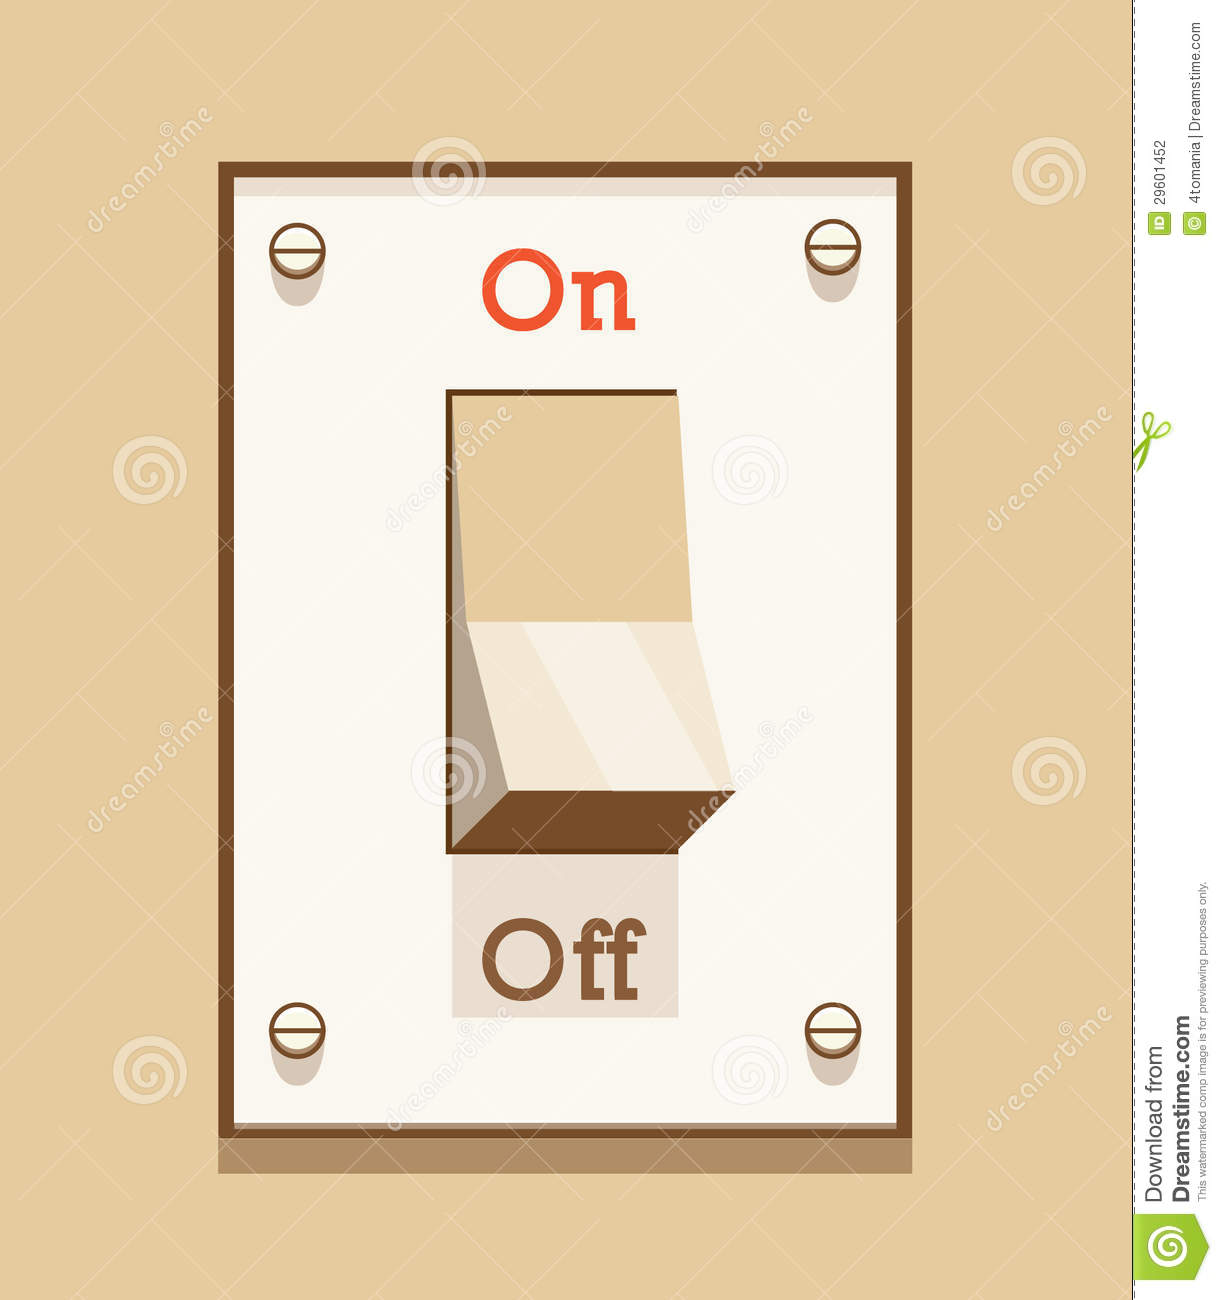 Light Switch Off Clipart On Off Light Switch Stock Vector Illustration Of Switch